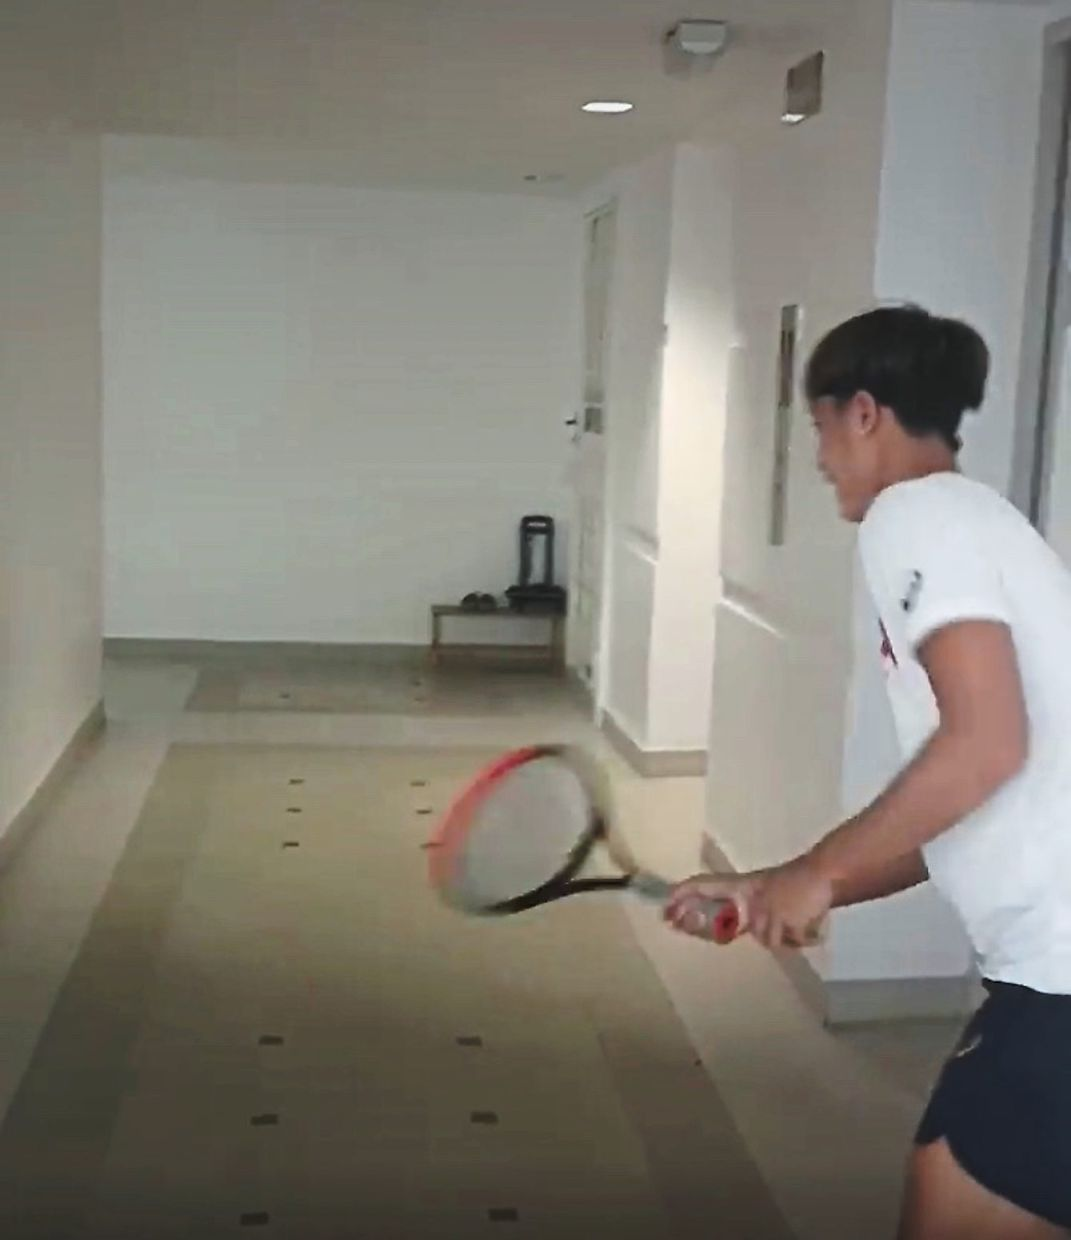 Against the wall: Tennis player Christian Didier Chin practising his shots at home.